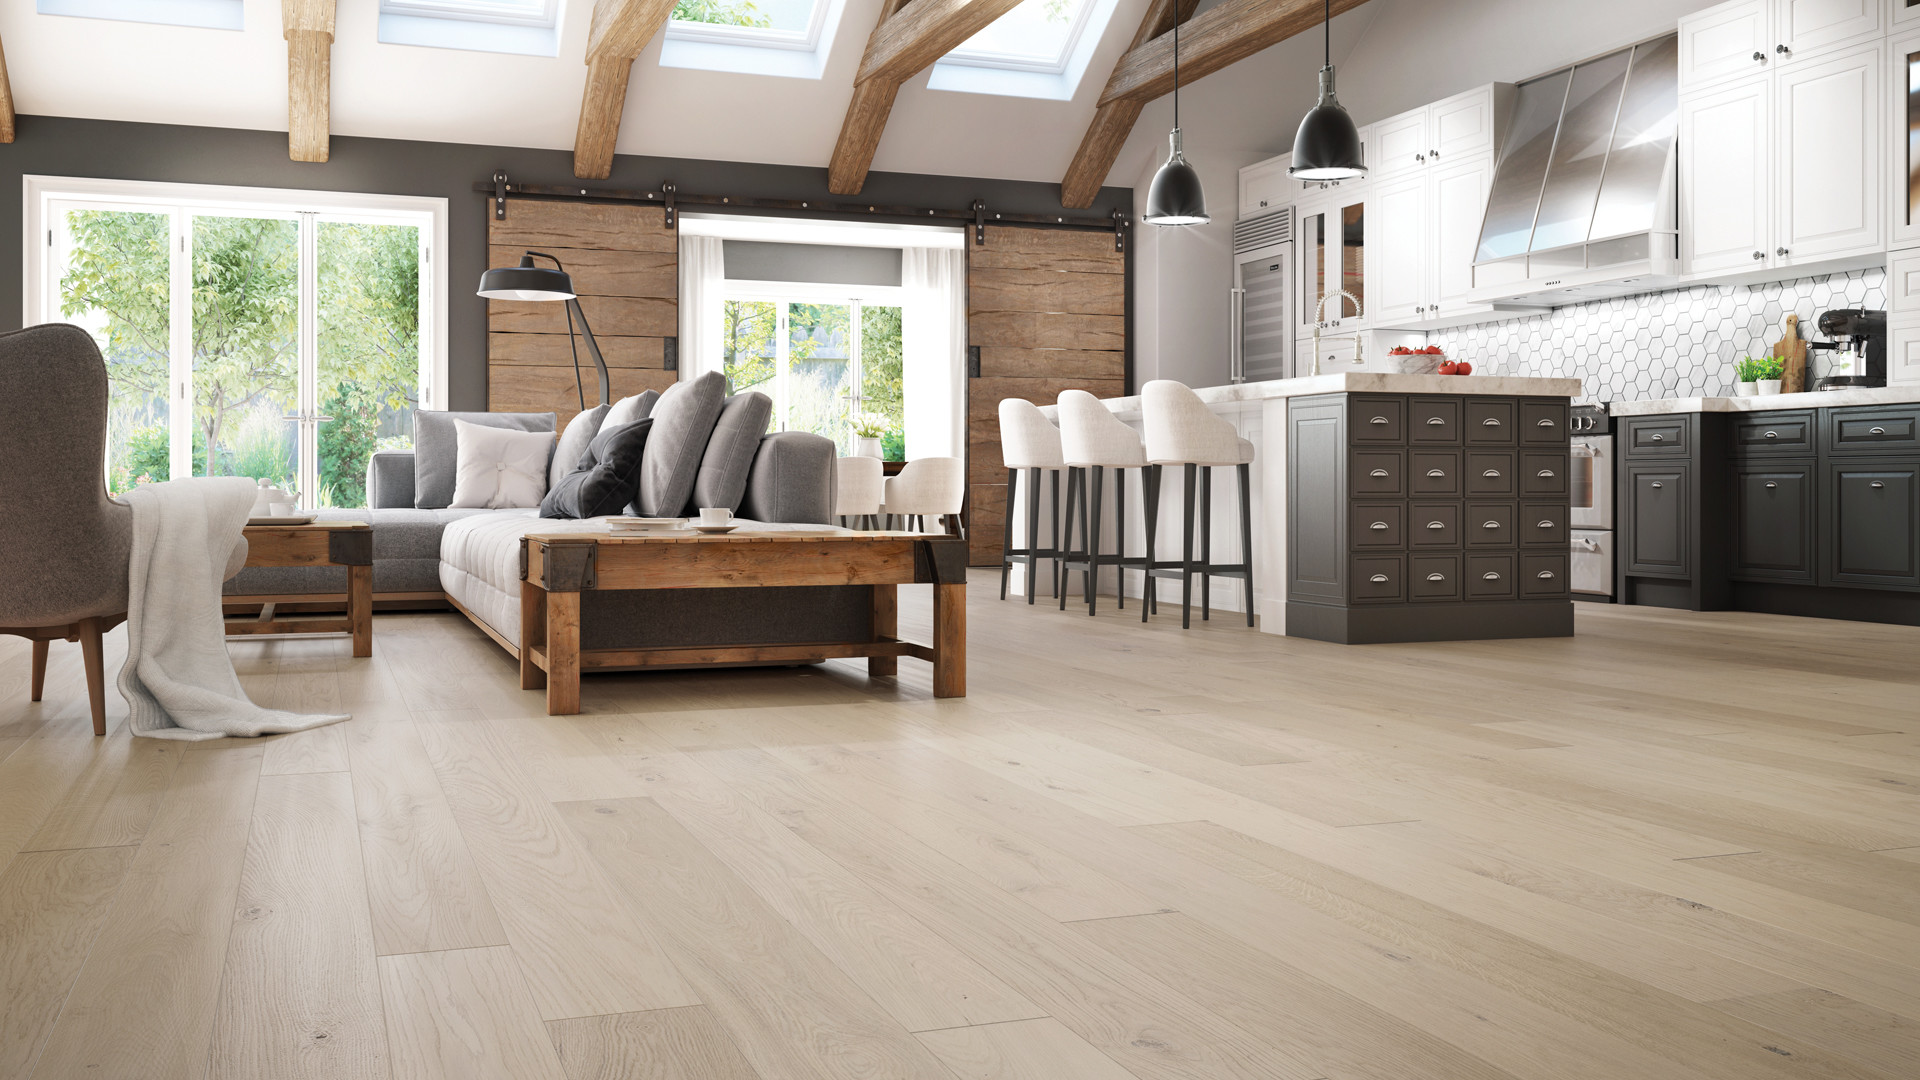 exotic hardwood flooring toronto of 4 latest hardwood flooring trends of 2018 lauzon flooring intended for this technology brings your hardwood floors and well being to a new level by improving indoor air quality by up to 85 and decomposing up to 99 6 of